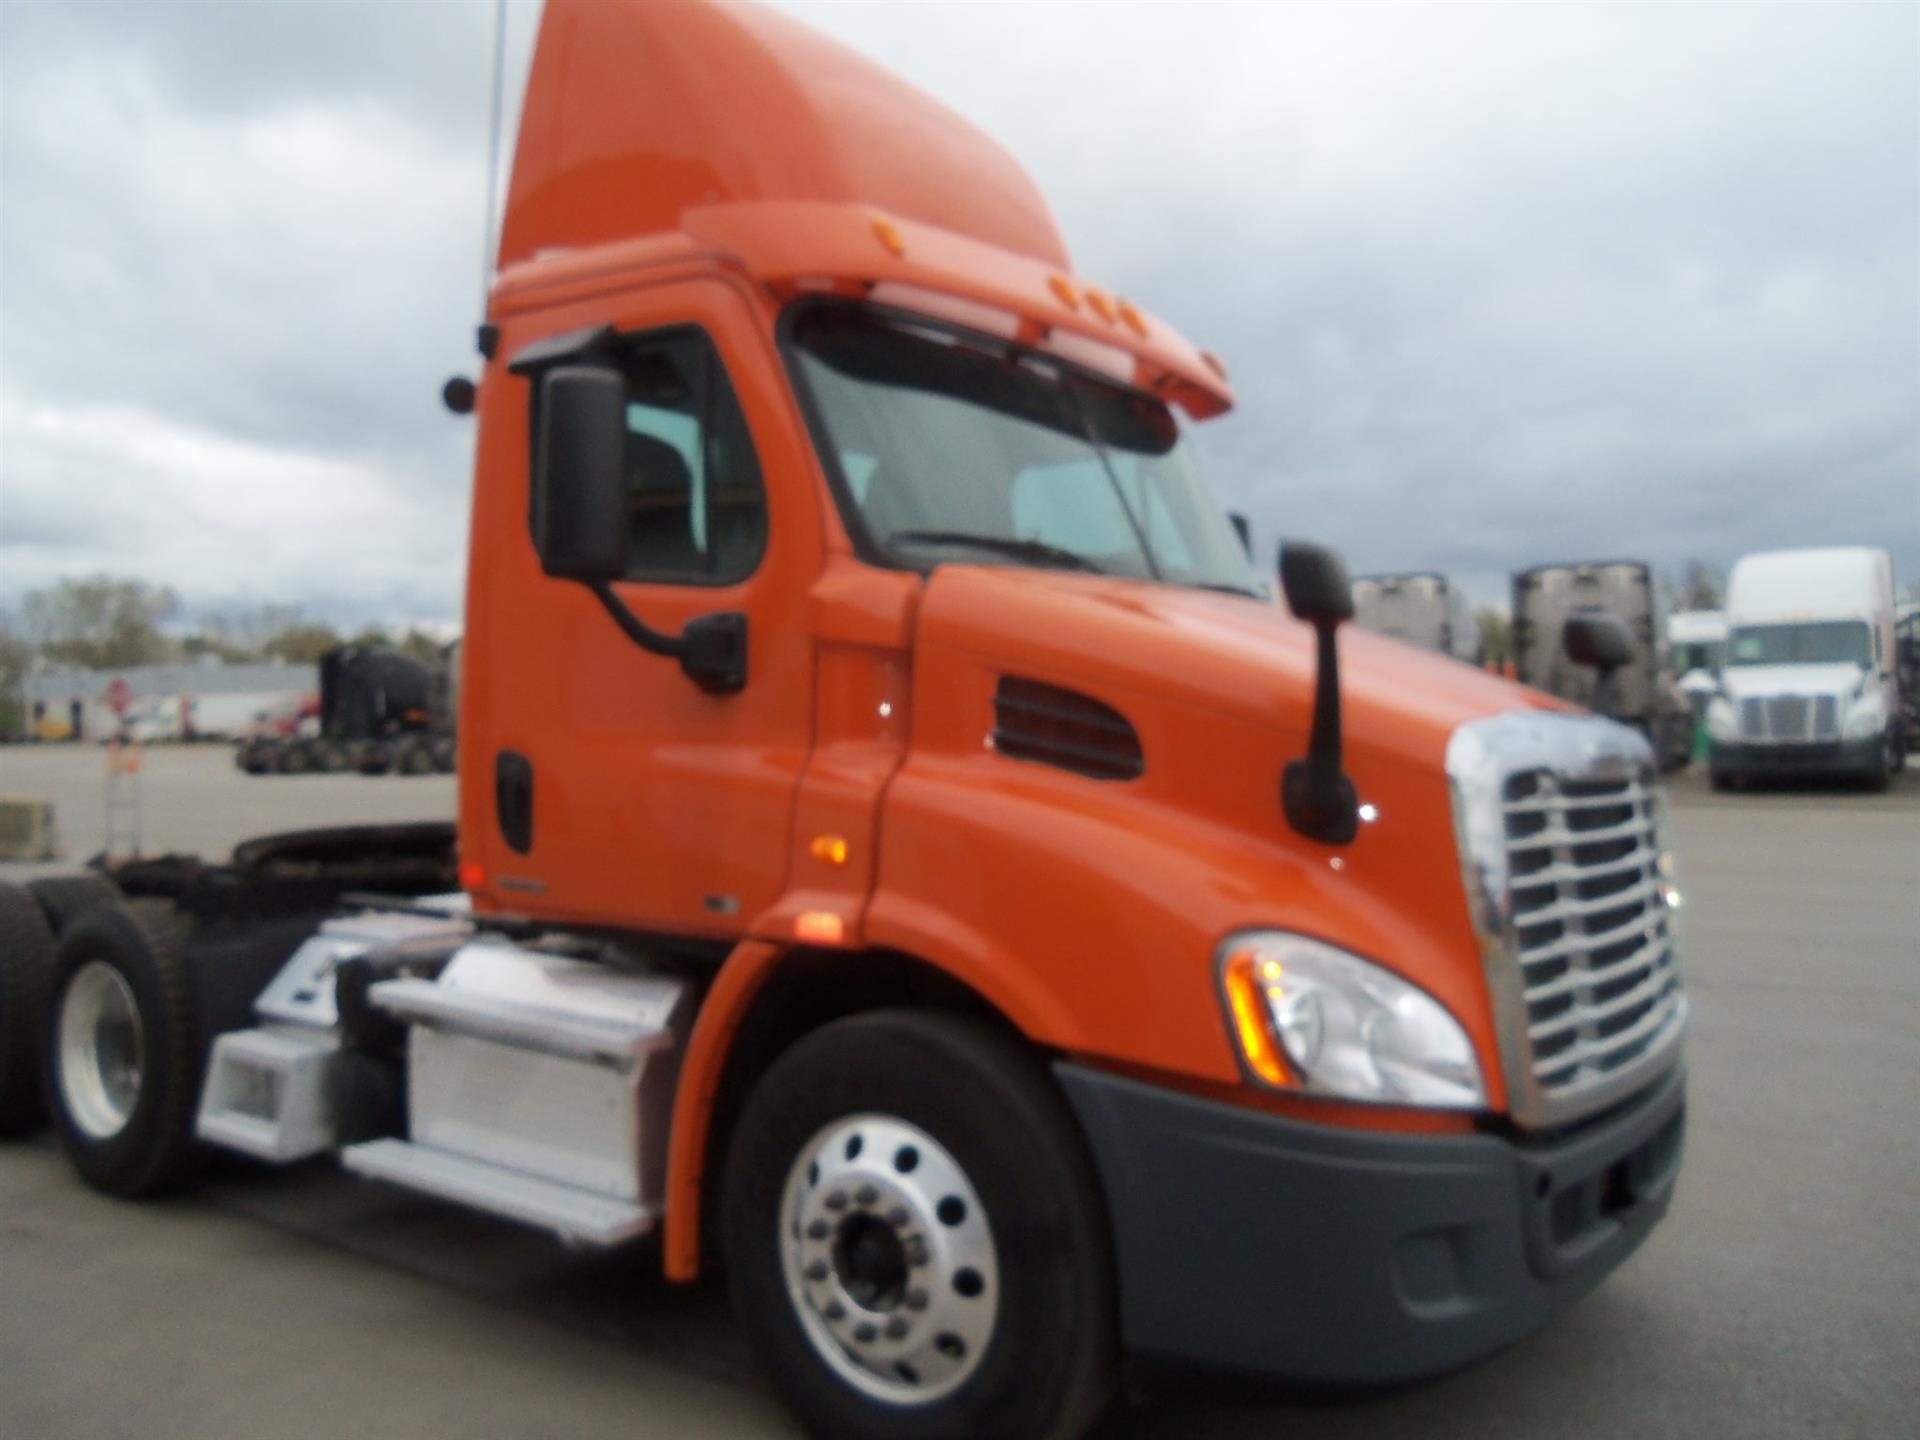 USED 2012 FREIGHTLINER CASCADIA DAYCAB TRUCK #83379